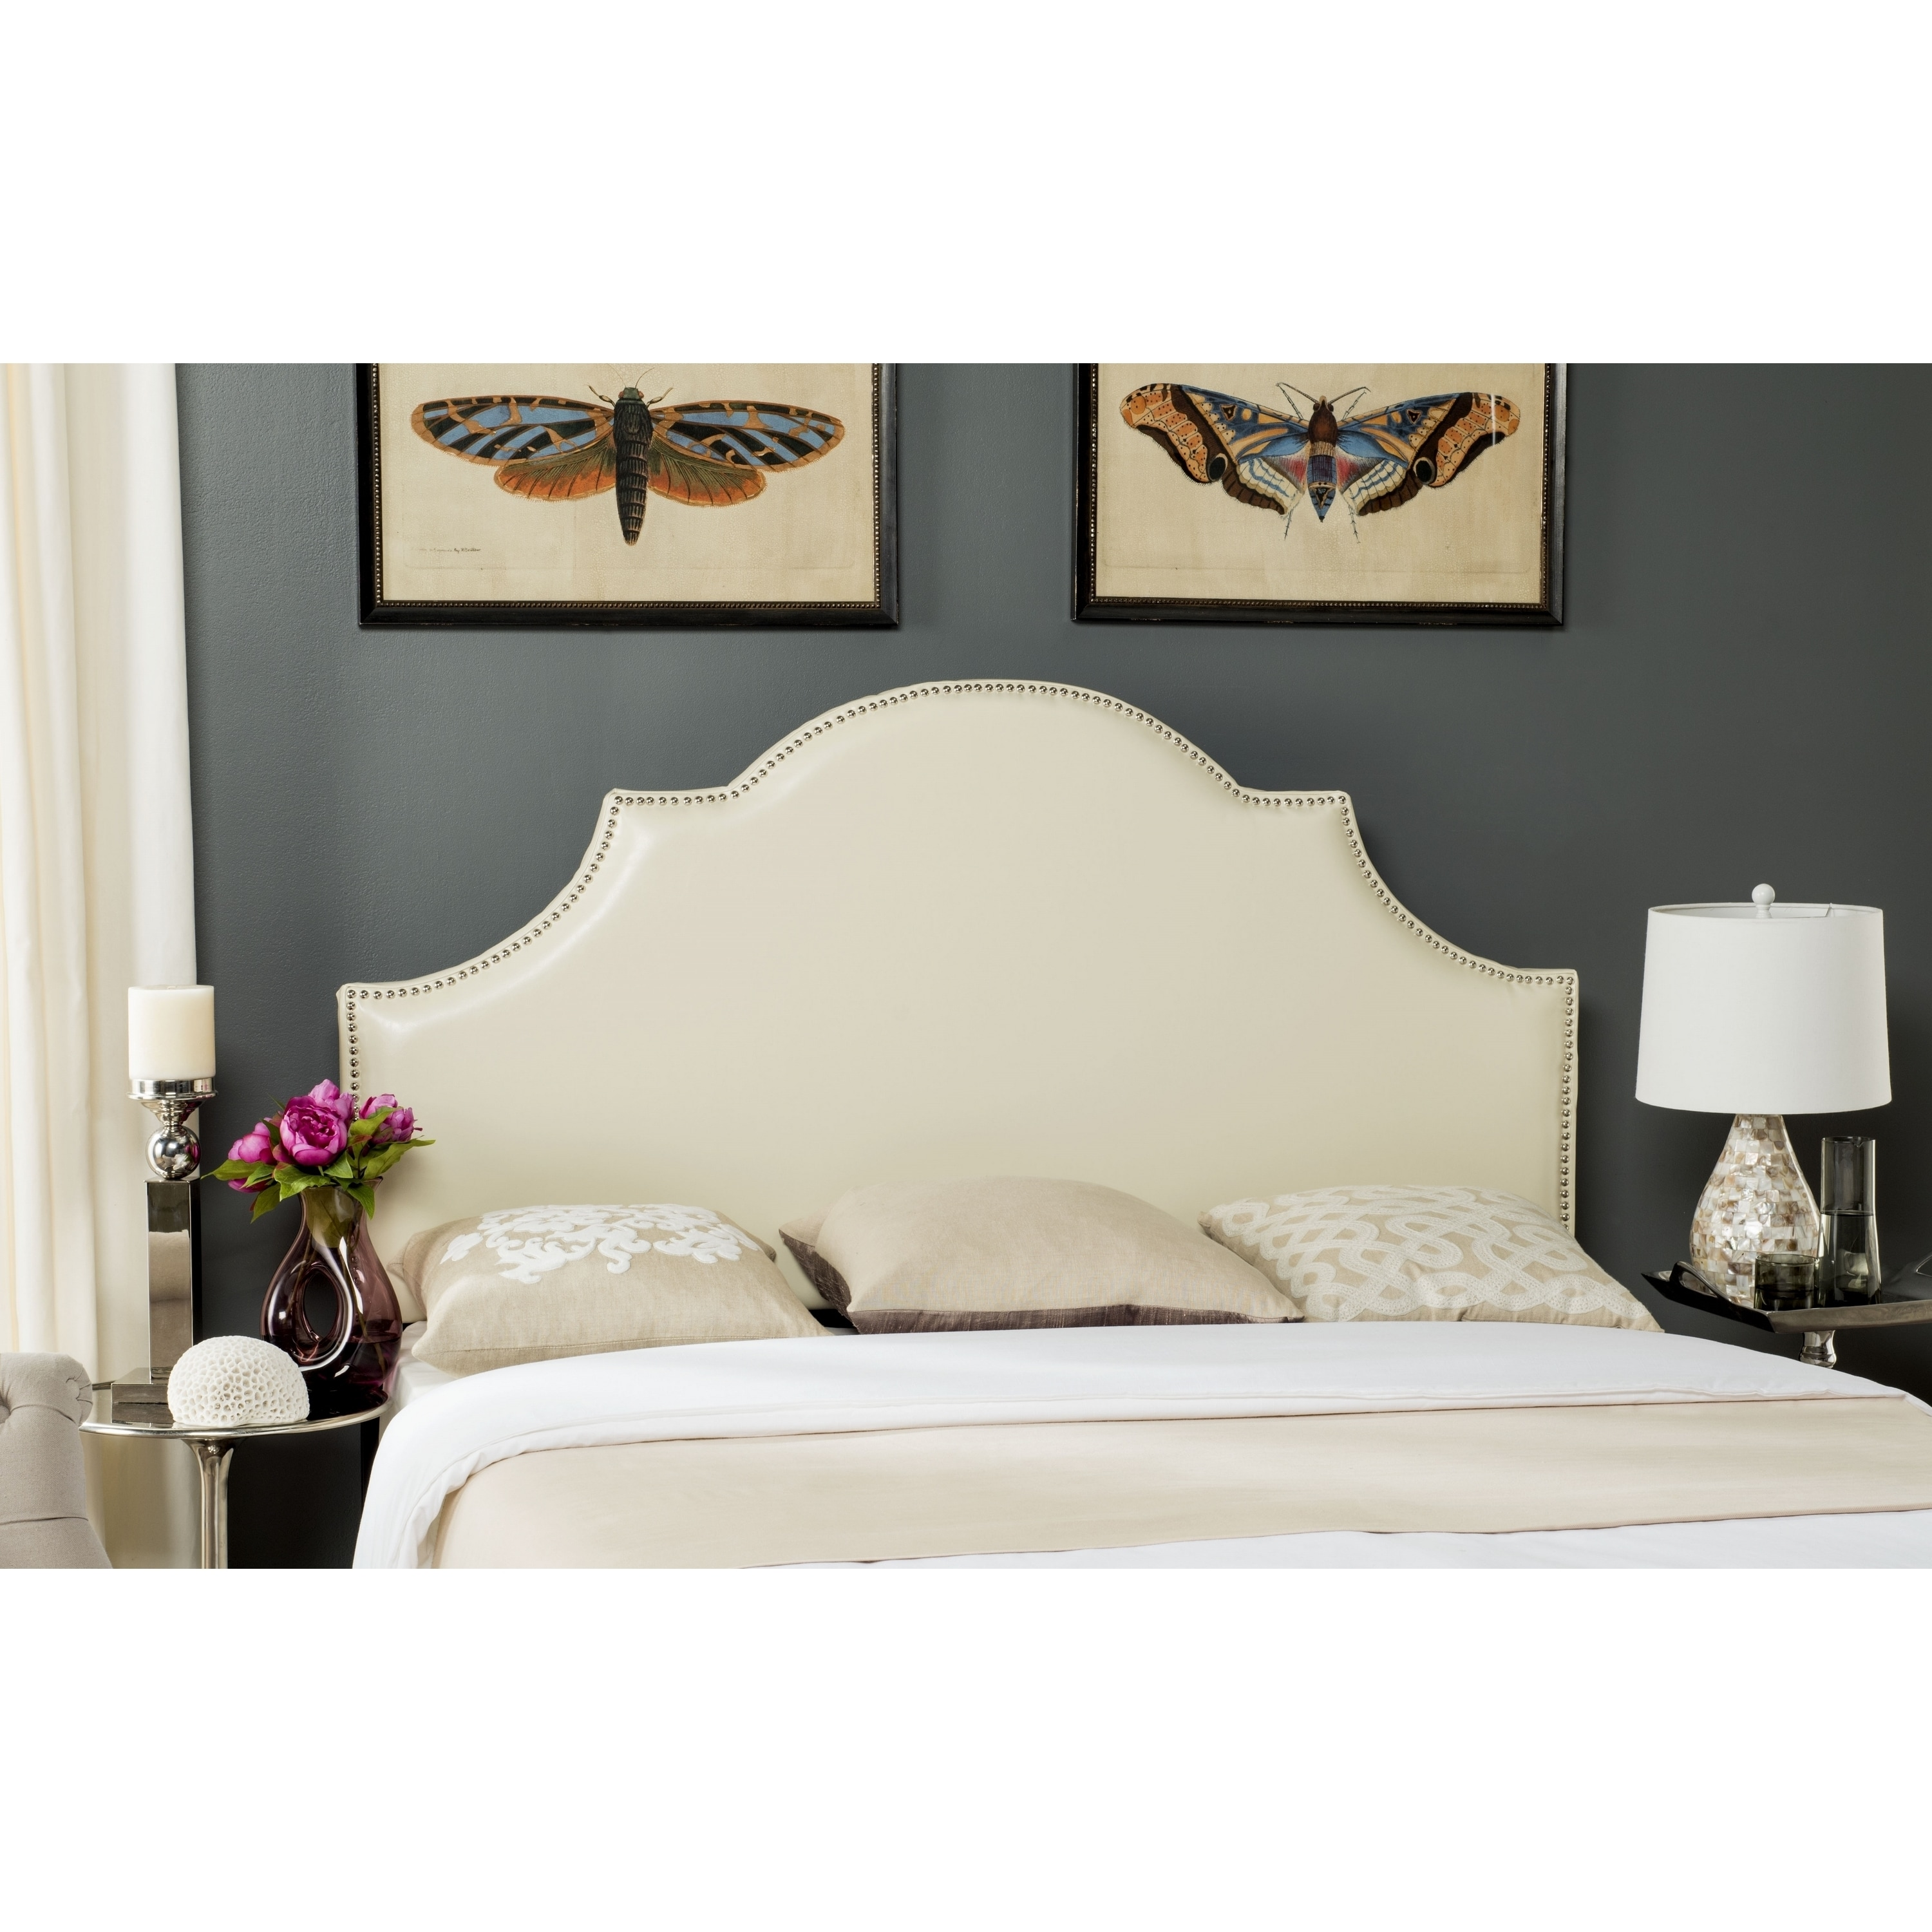 leather faux design diy king marvelous office images ideas amys headboard